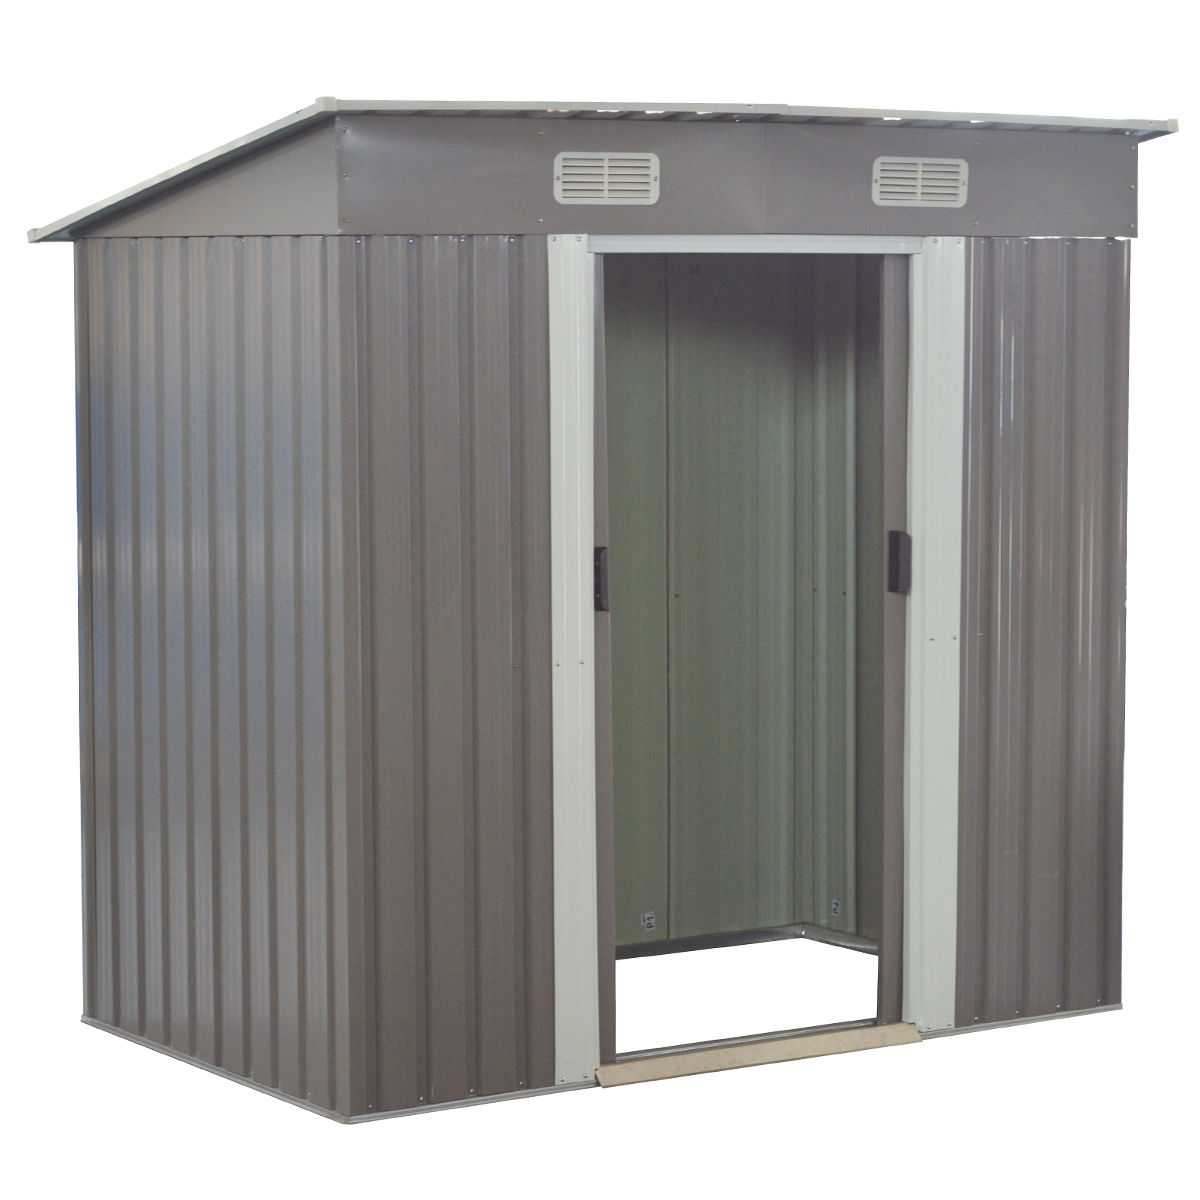 Costway 4x6FT Outdoor Garden Storage Shed Tool House Sliding Door Galvanized Steel Gray